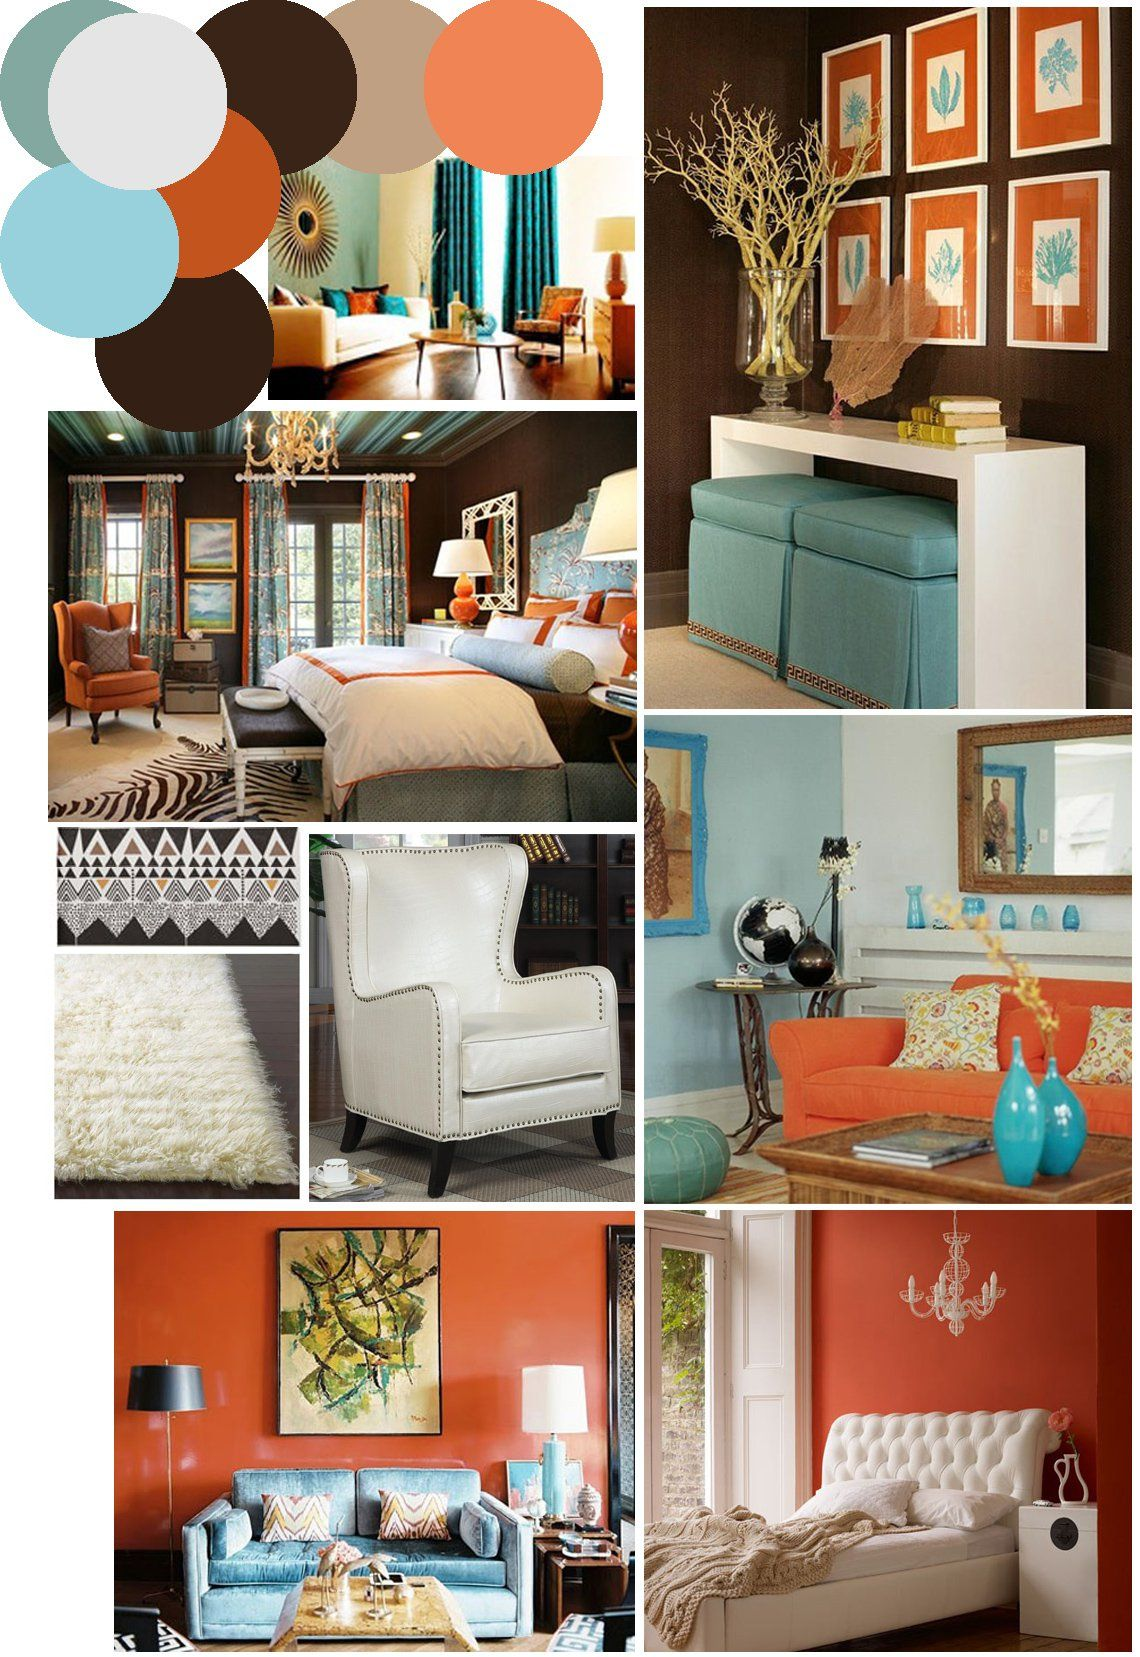 Mr kate color palette inspo chocolate brown coral and robins egg blue